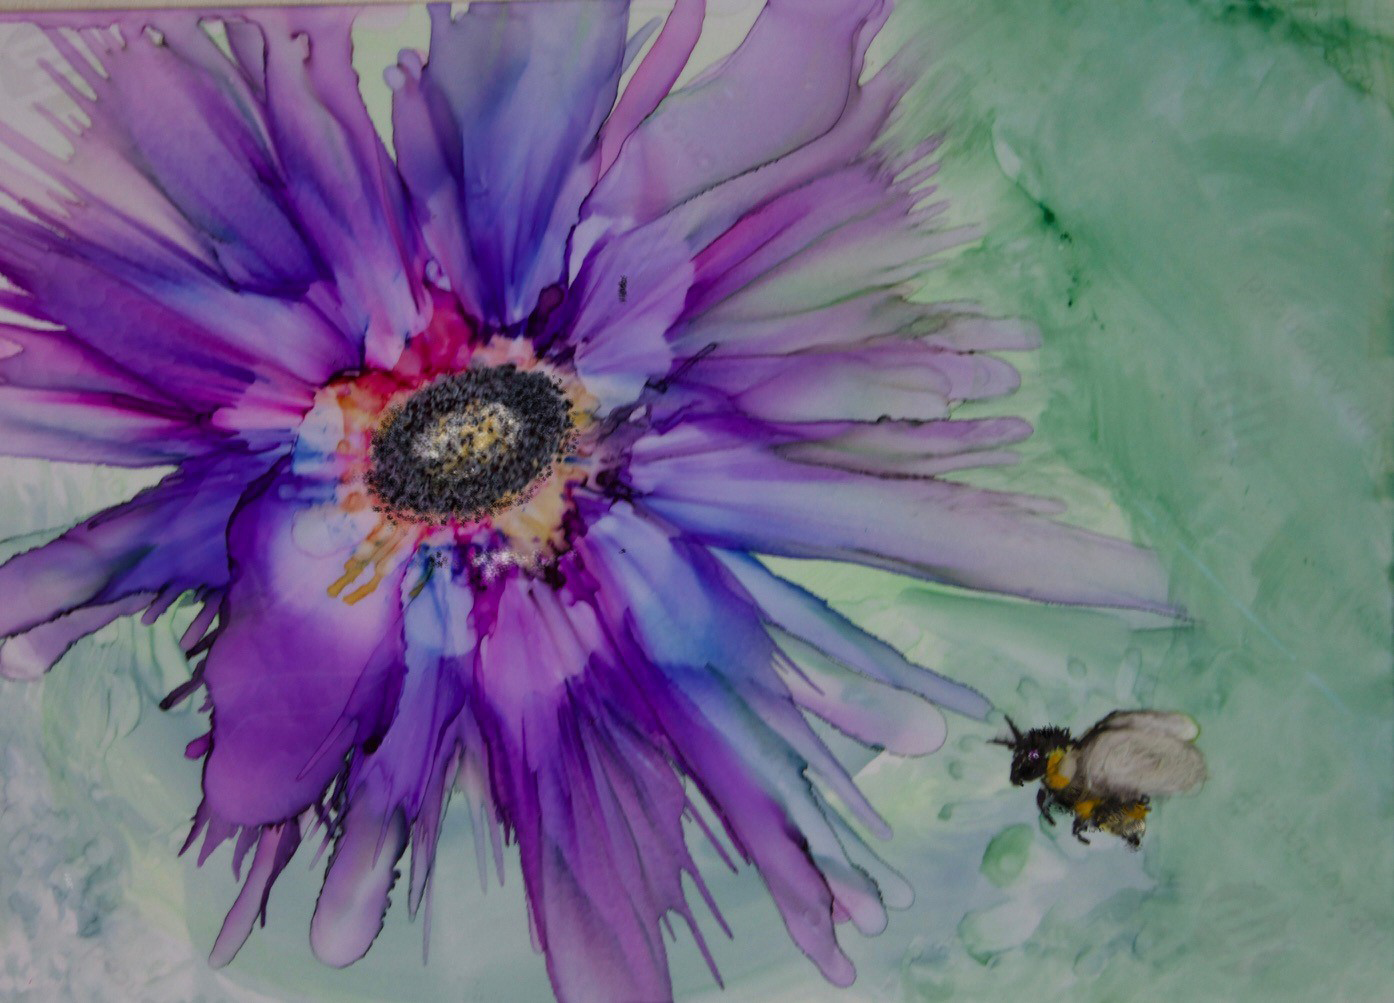 2021 Image of Passionate Focus shows a vivid purple flower against a pale green background with a plump bumble bee ready to land.